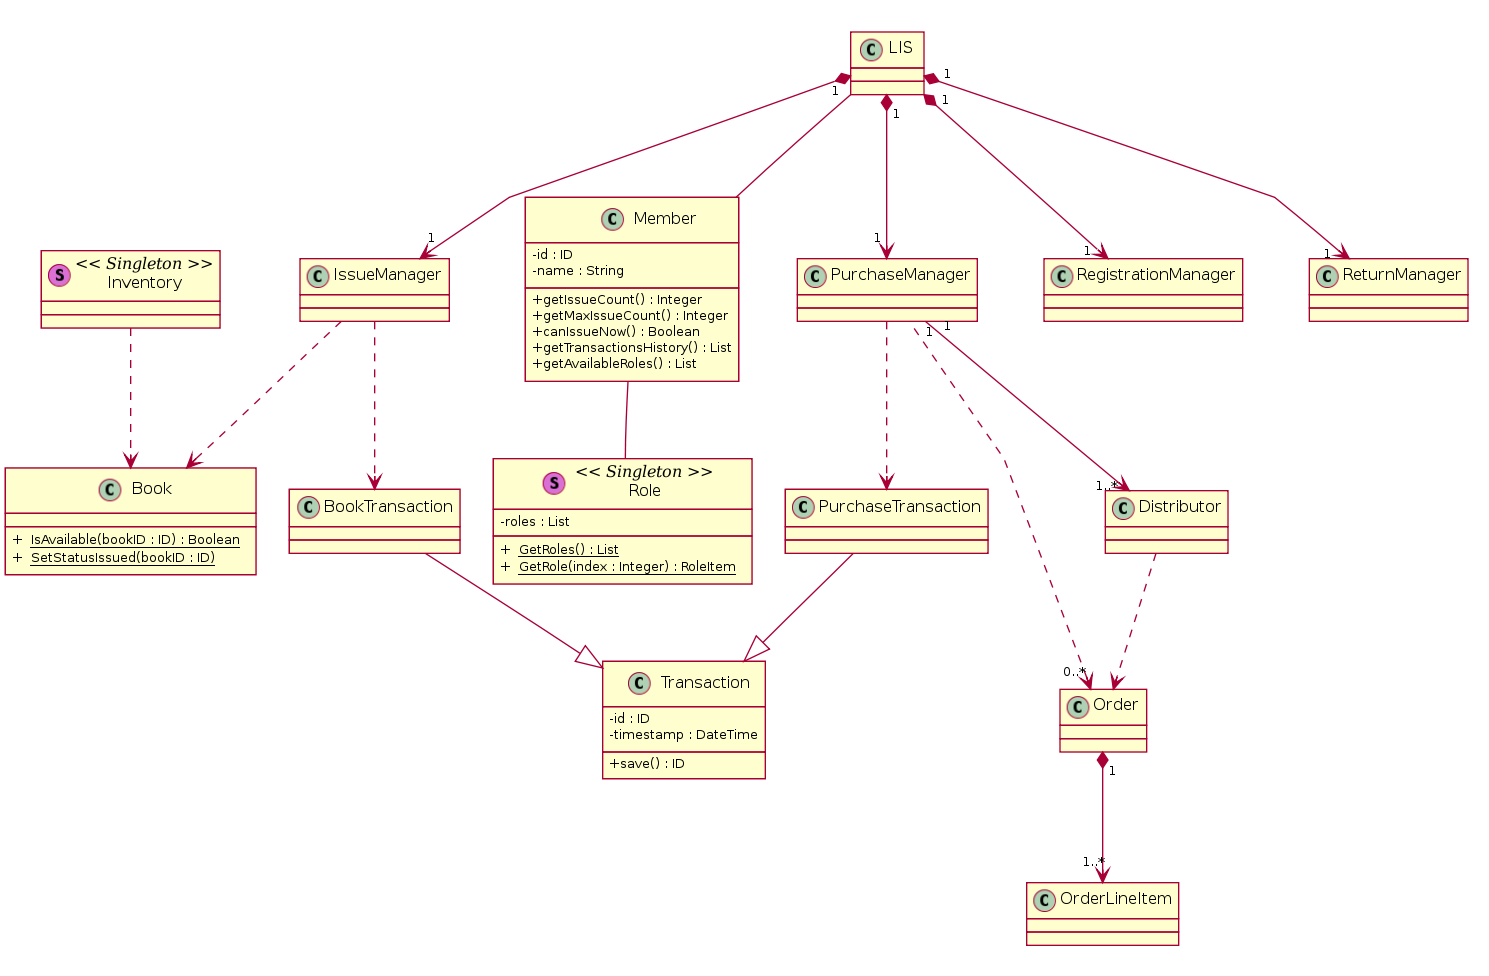 Software engineering virtual lab iit kharagpur class diagram for lis ccuart Images